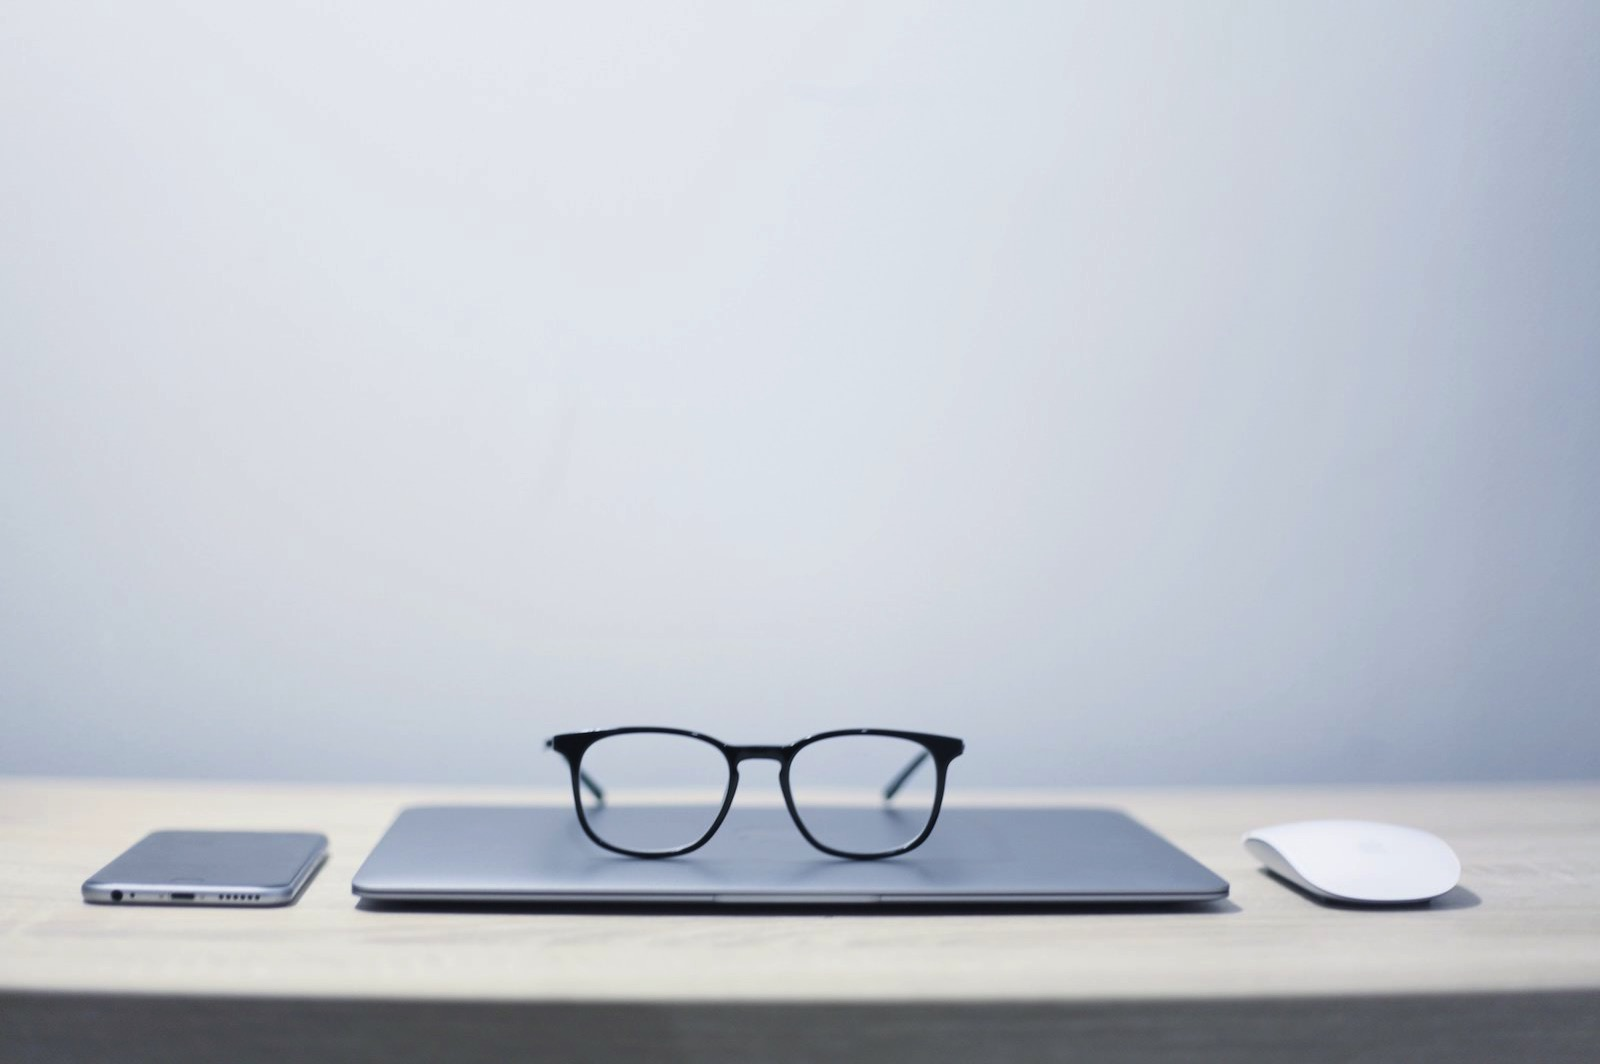 jesus-kiteque-wn-KYaHwcis-unsplash-glasses-on-apple-products.jpg